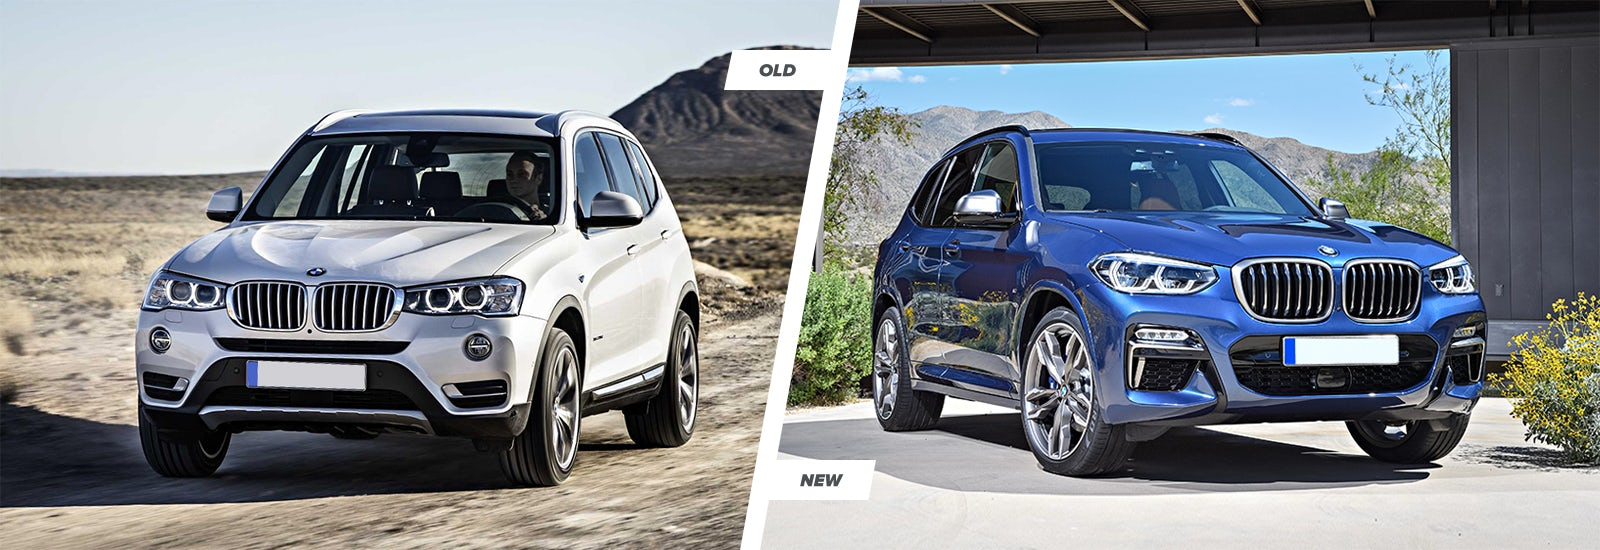 new car reg release dateNew BMW X3 and X3 M40i price specs and release date  carwow